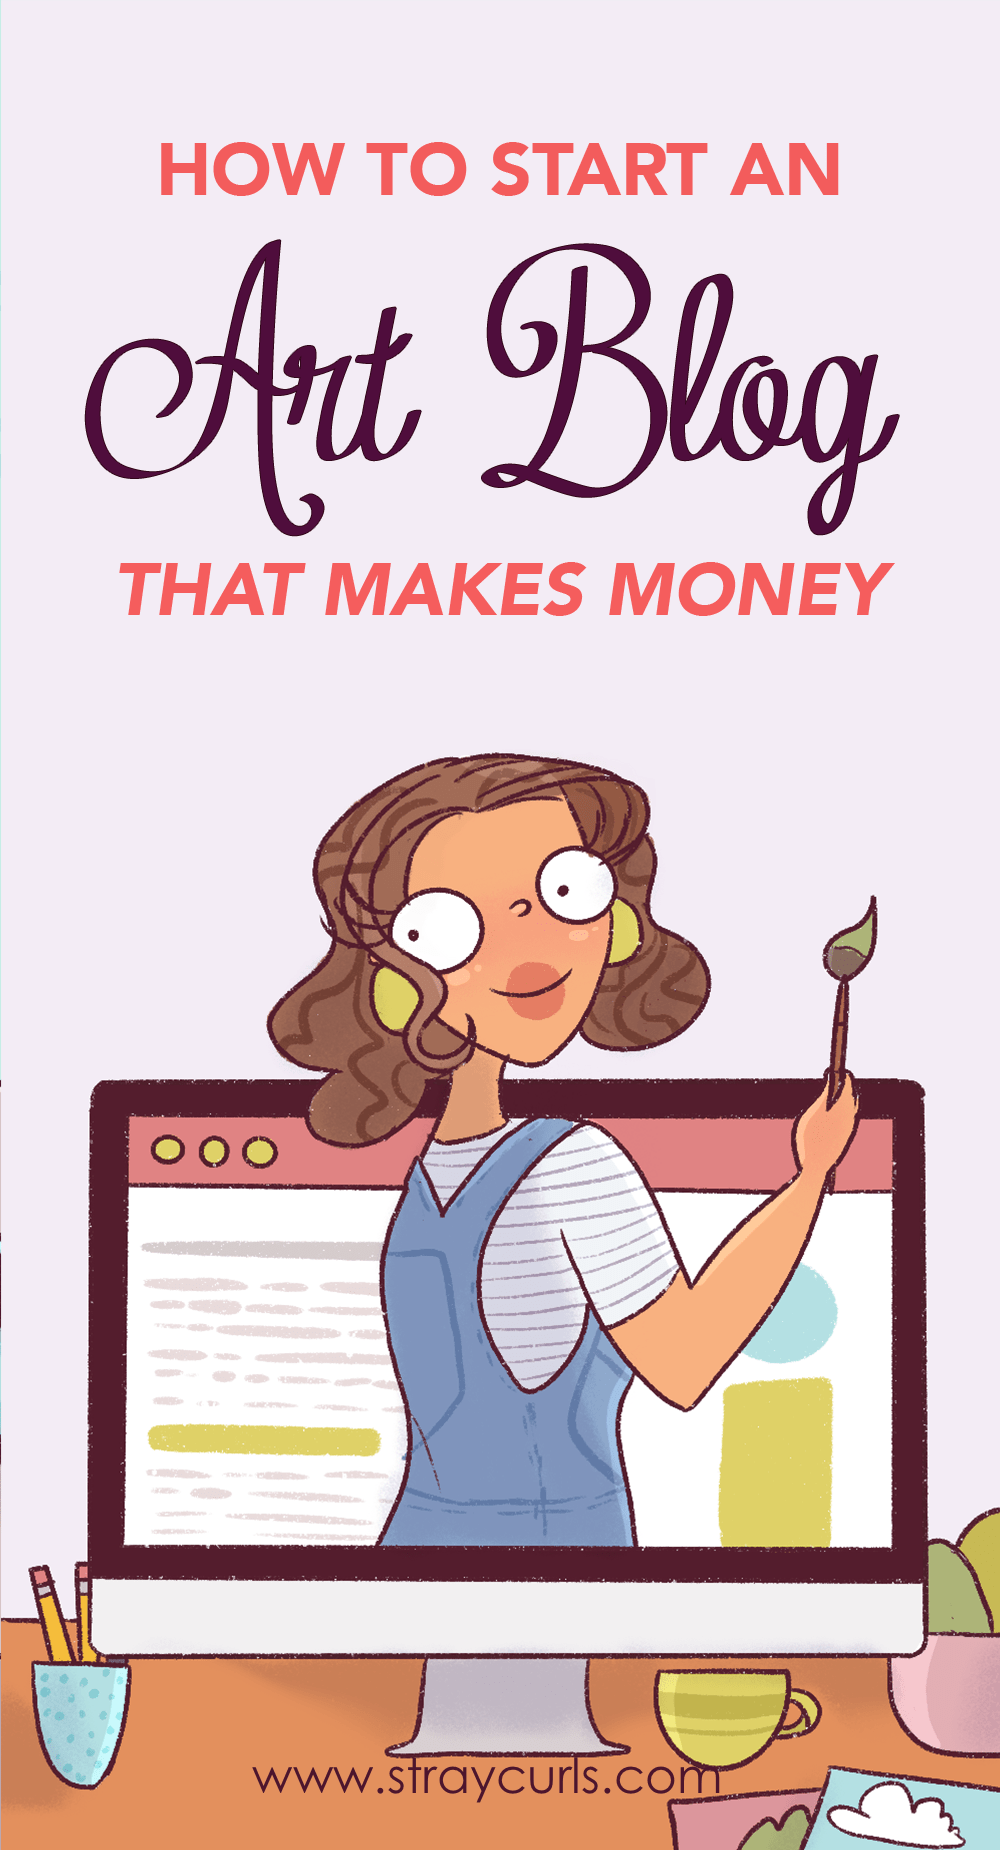 How to start an art blog that makes money. This is a post for artists, illustrators, photographers, sculptors who want to create a website and make money online.